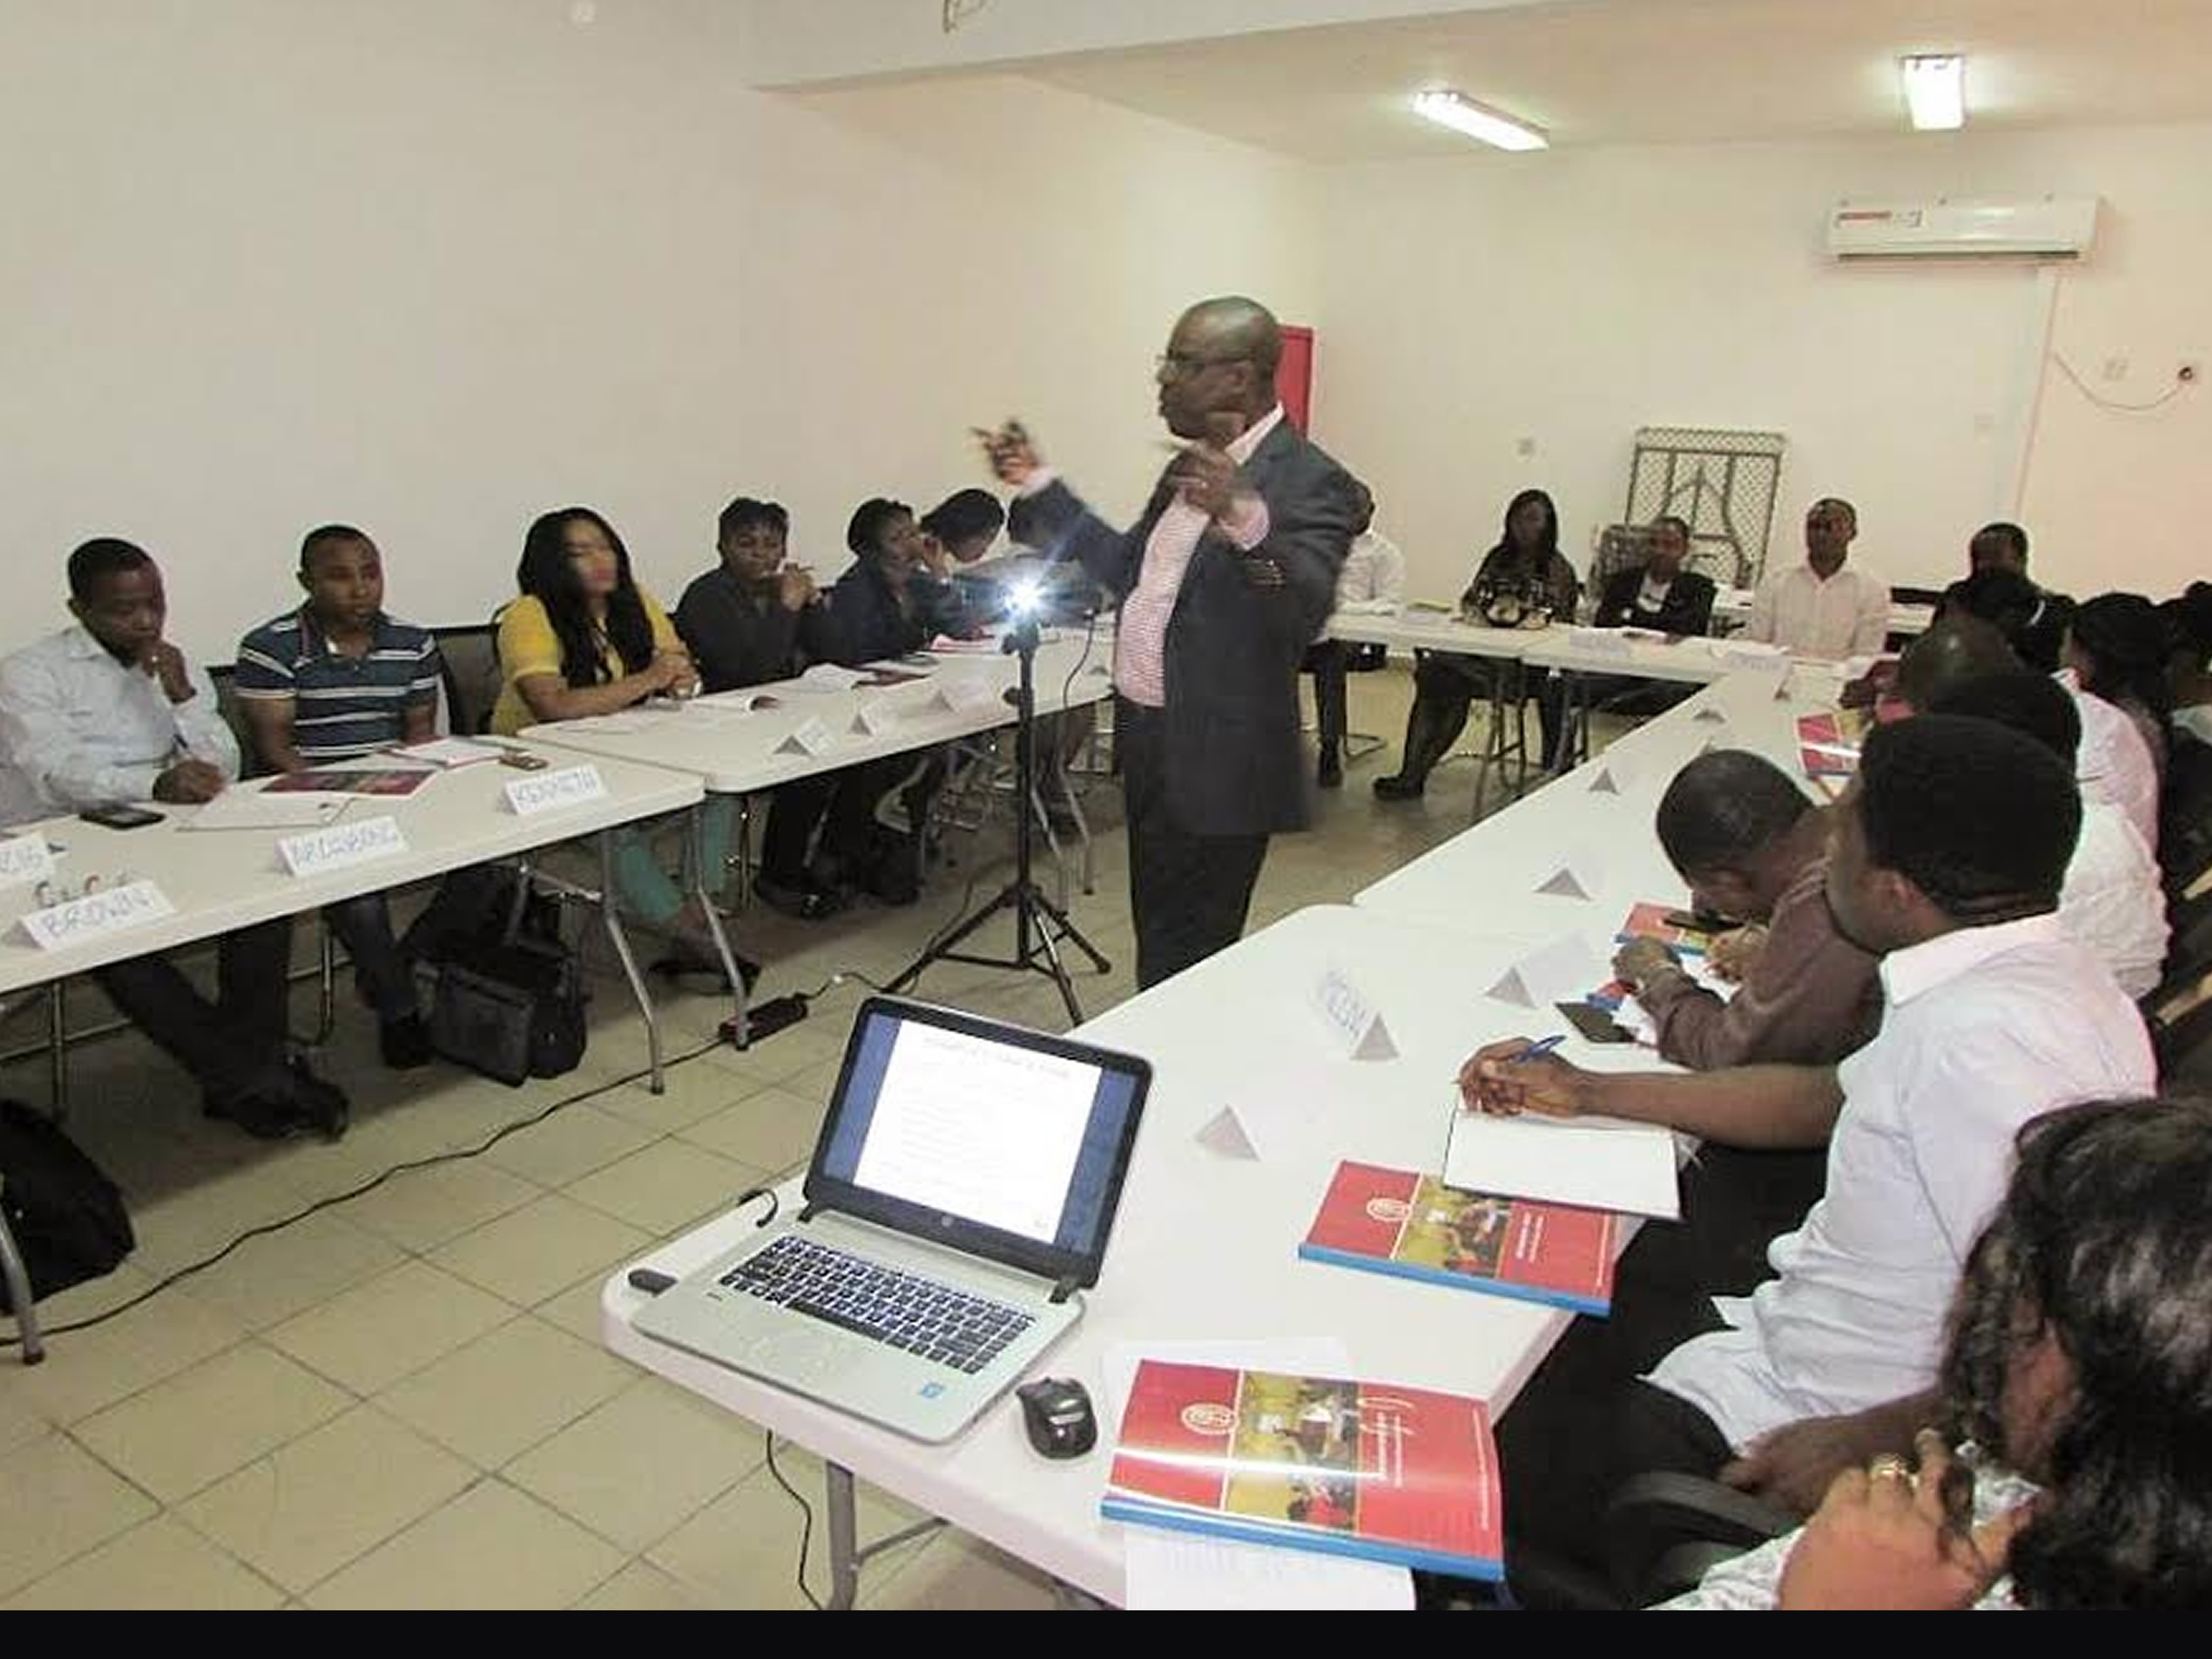 Marketsquare concludes Retail Workshops in Port Harcourt.